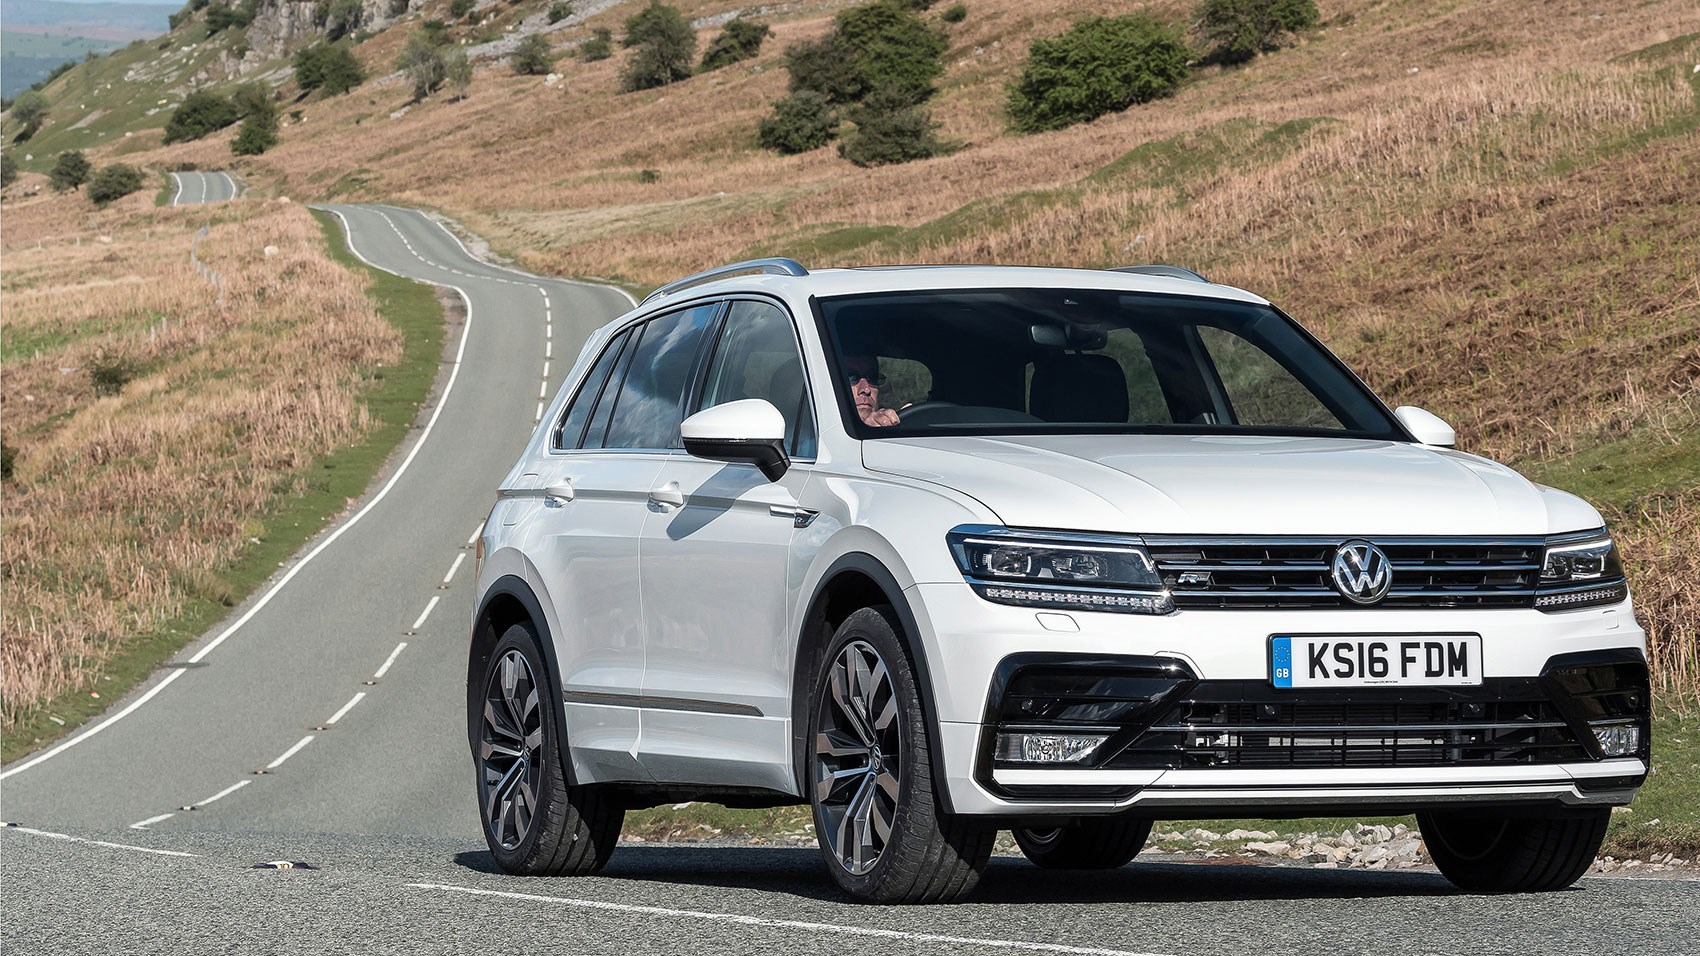 vw tiguan r line 2 0 tdi 150 4motion dsg 2016 review car magazine. Black Bedroom Furniture Sets. Home Design Ideas